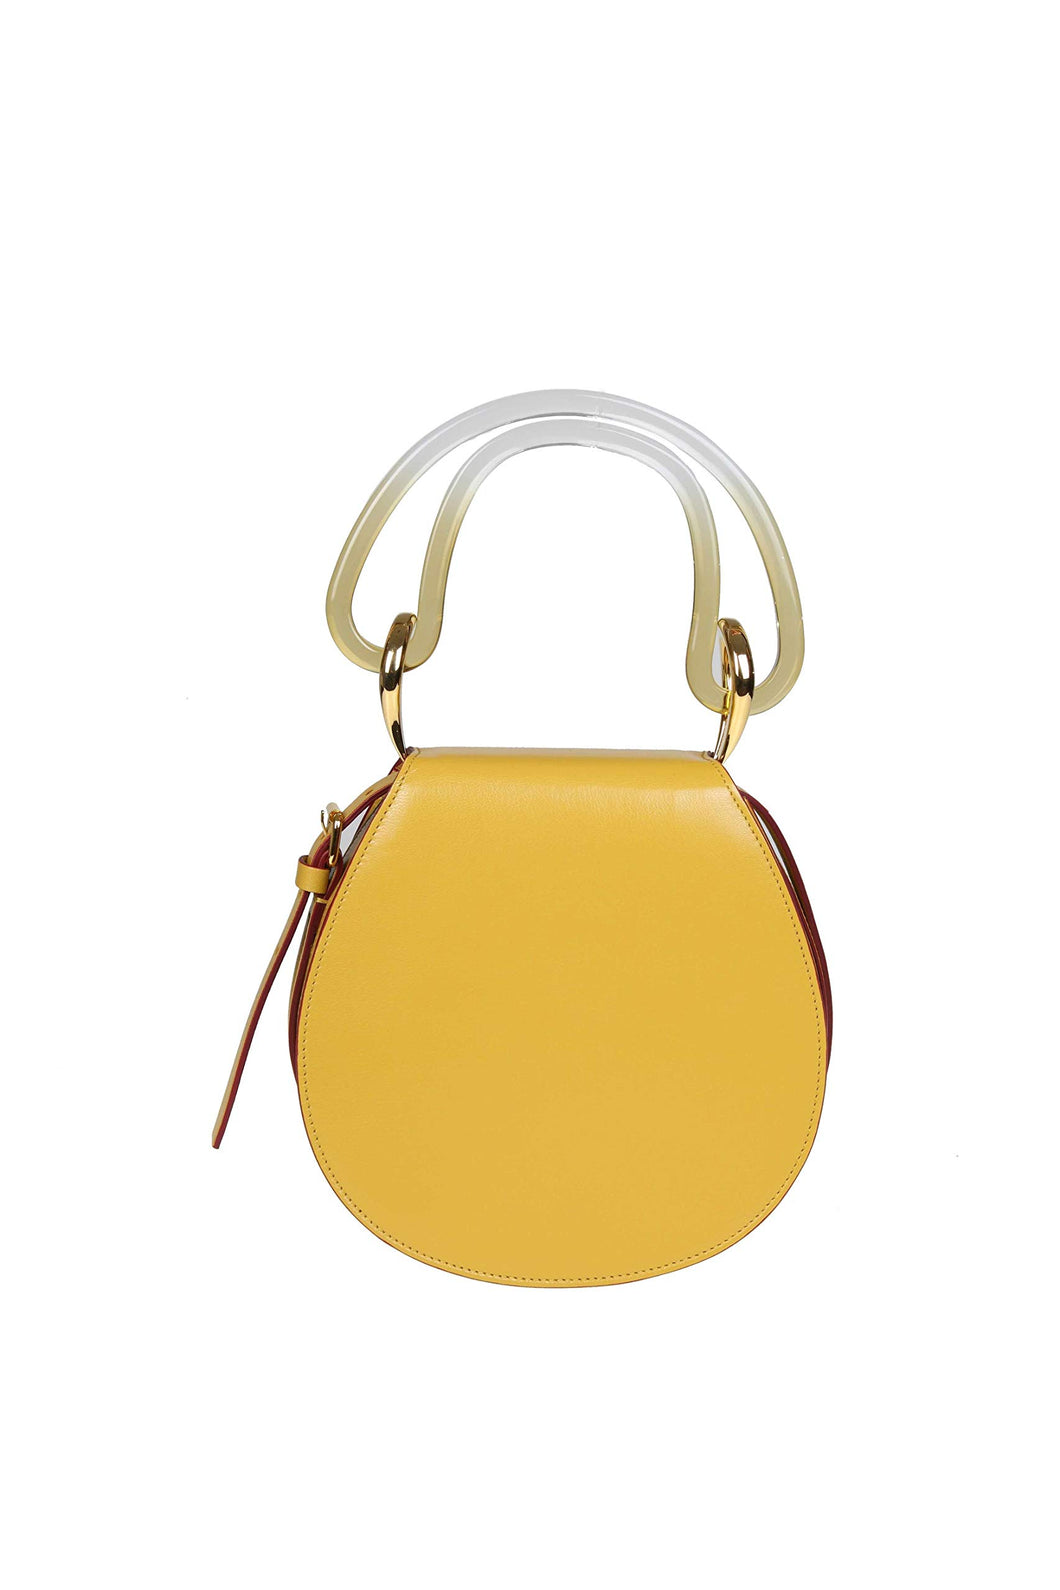 Marni Women's Yellow Leather Handbag - Vancelette Global Art Acquisitions